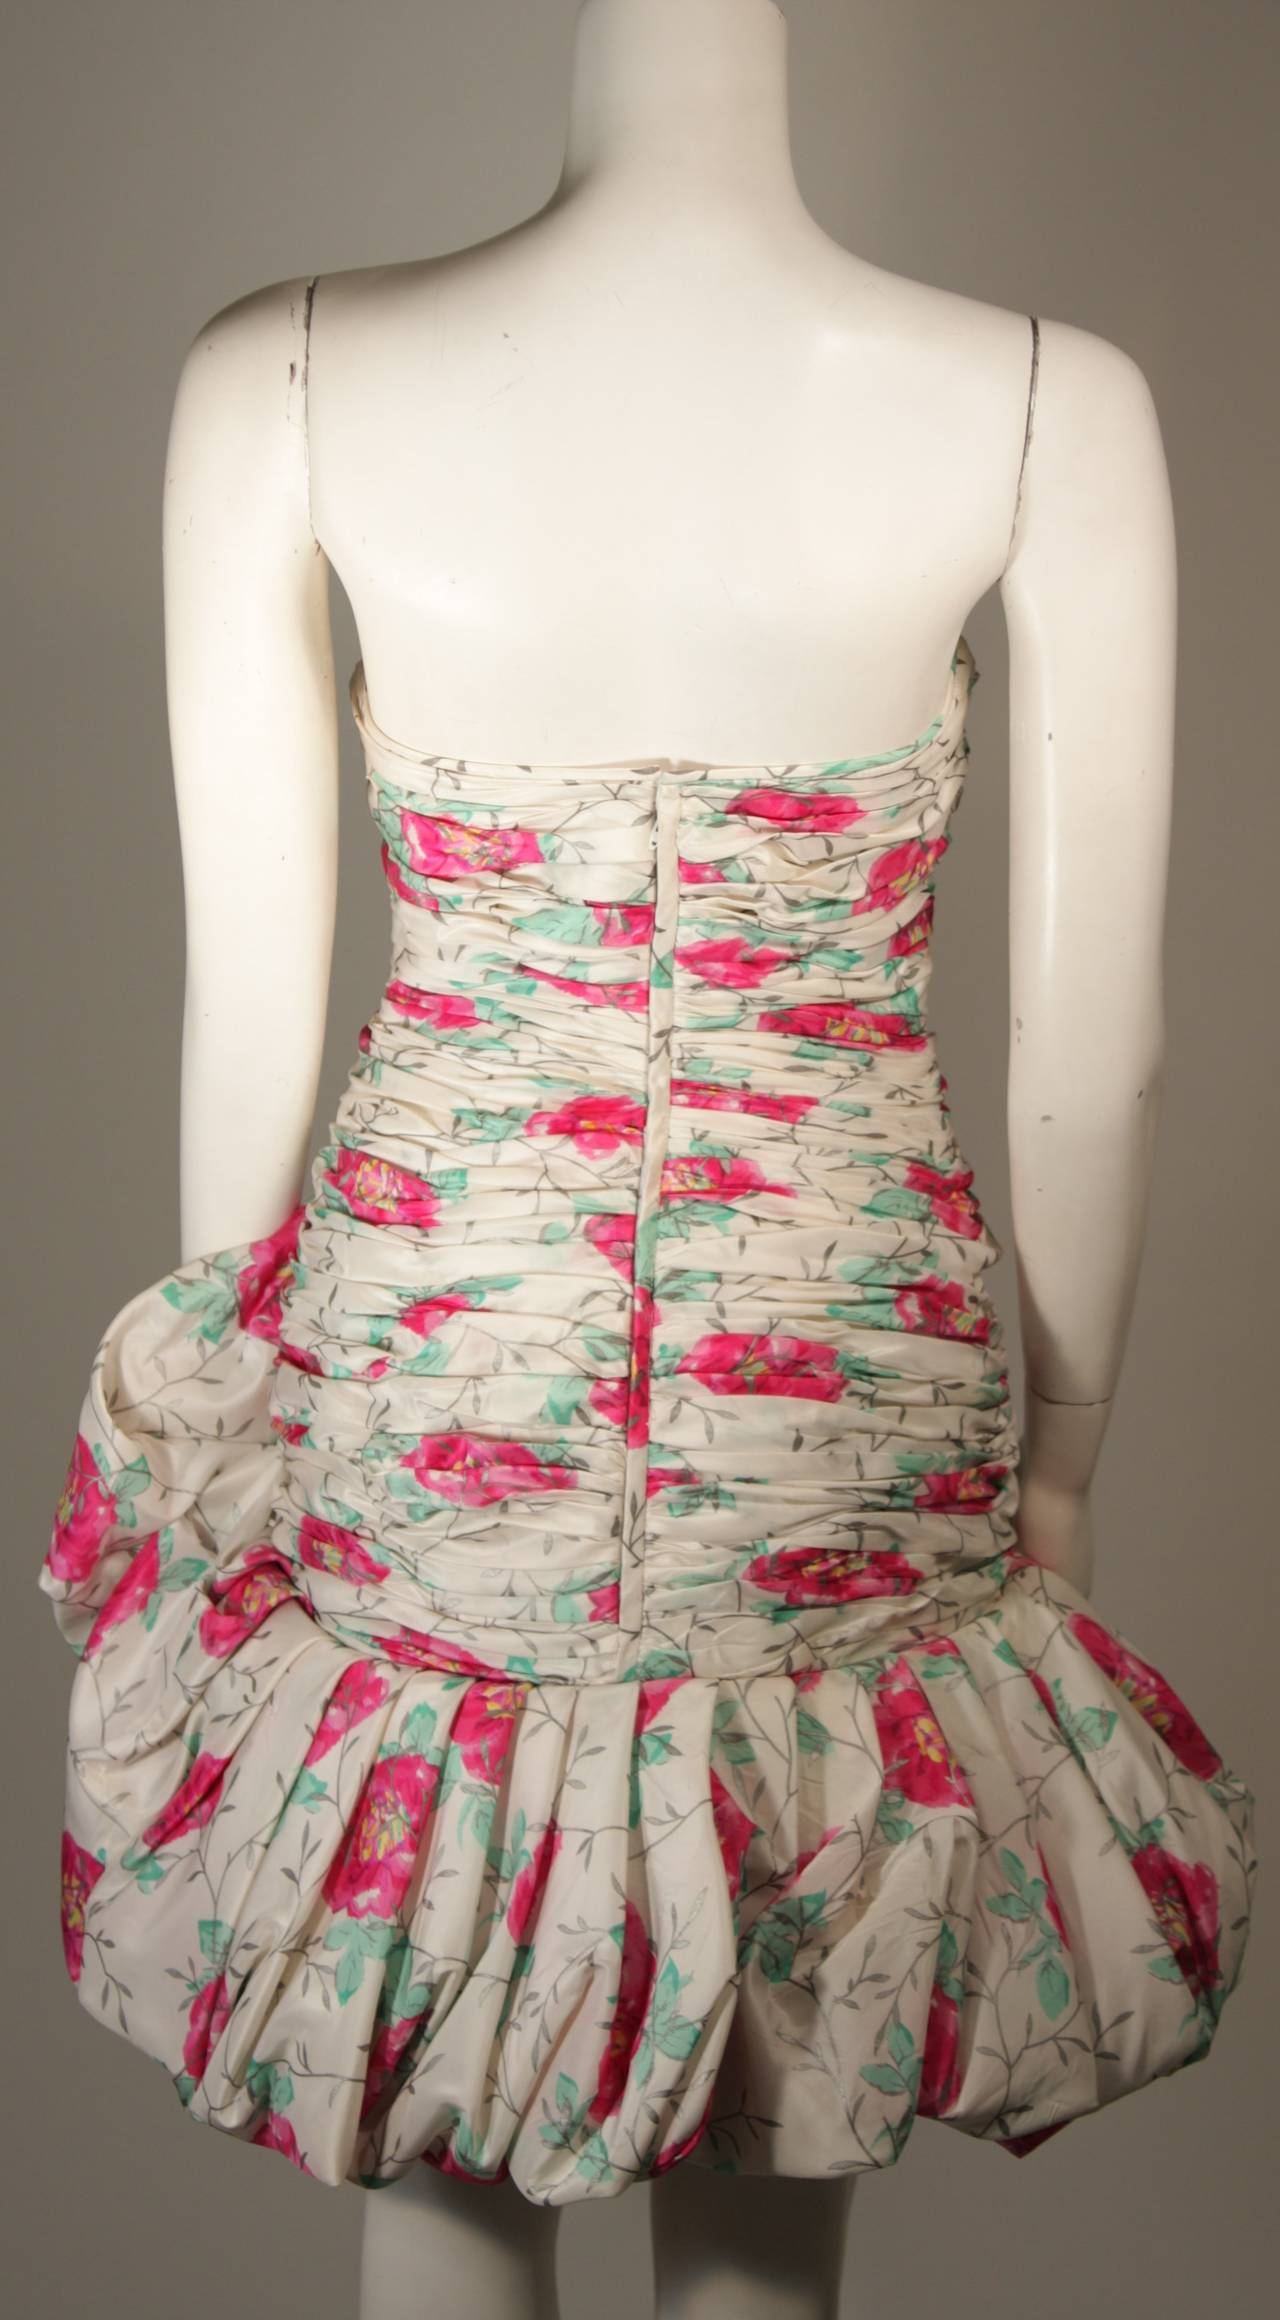 Ungaro White Silk Cocktail Dress with Pink & Green Floral Design Size 8 For Sale 4